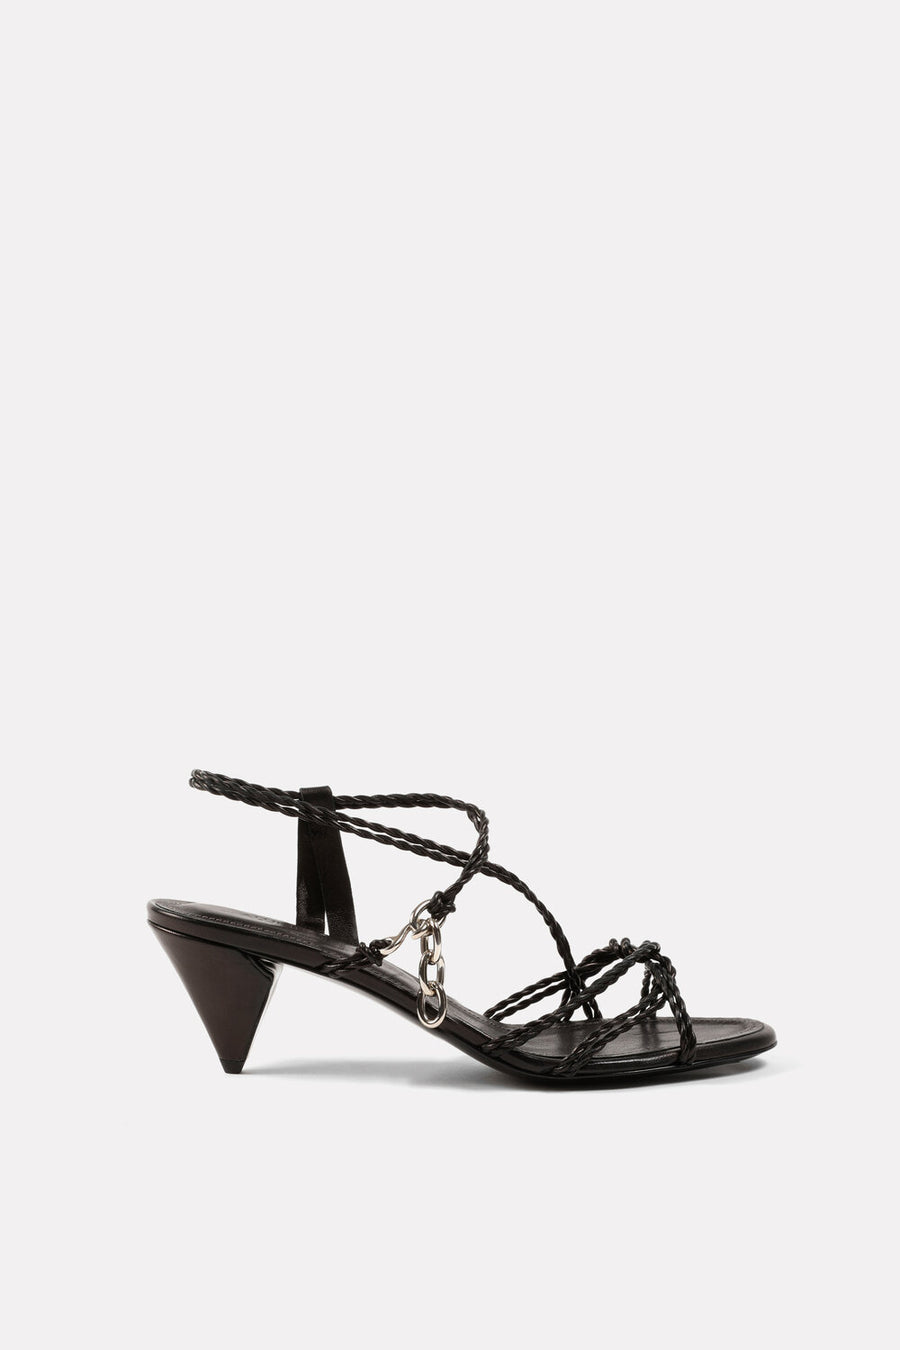 Mignon Twist Kitten Heel Sandal Black.